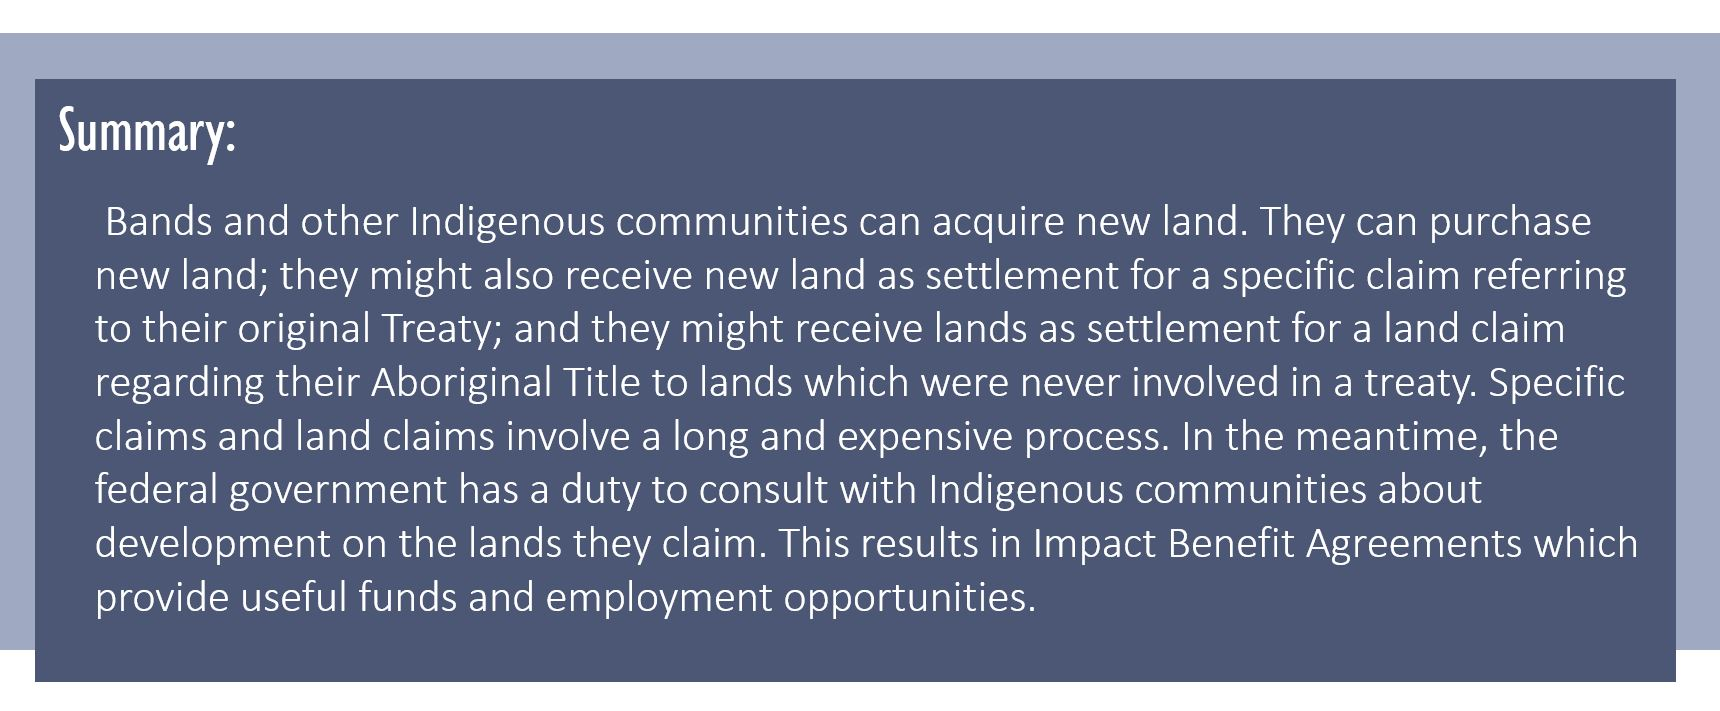 Summary: Bands and other Indigenous communities can acquire new land. They can purchase new land; they might also receive new land as settlement for a specific claim referring to their original Treaty; and they might receive lands as settlement for a land claim regarding their Aboriginal Title to lands which were never involved in a treaty. Specific claims and land claims involve a long and expensive process. In the meantime, the federal government has a duty to consult with Indigenous communities about development on the lands they claim. This results in Impact Benefit Agreements which provide useful funds and employment opportunities.